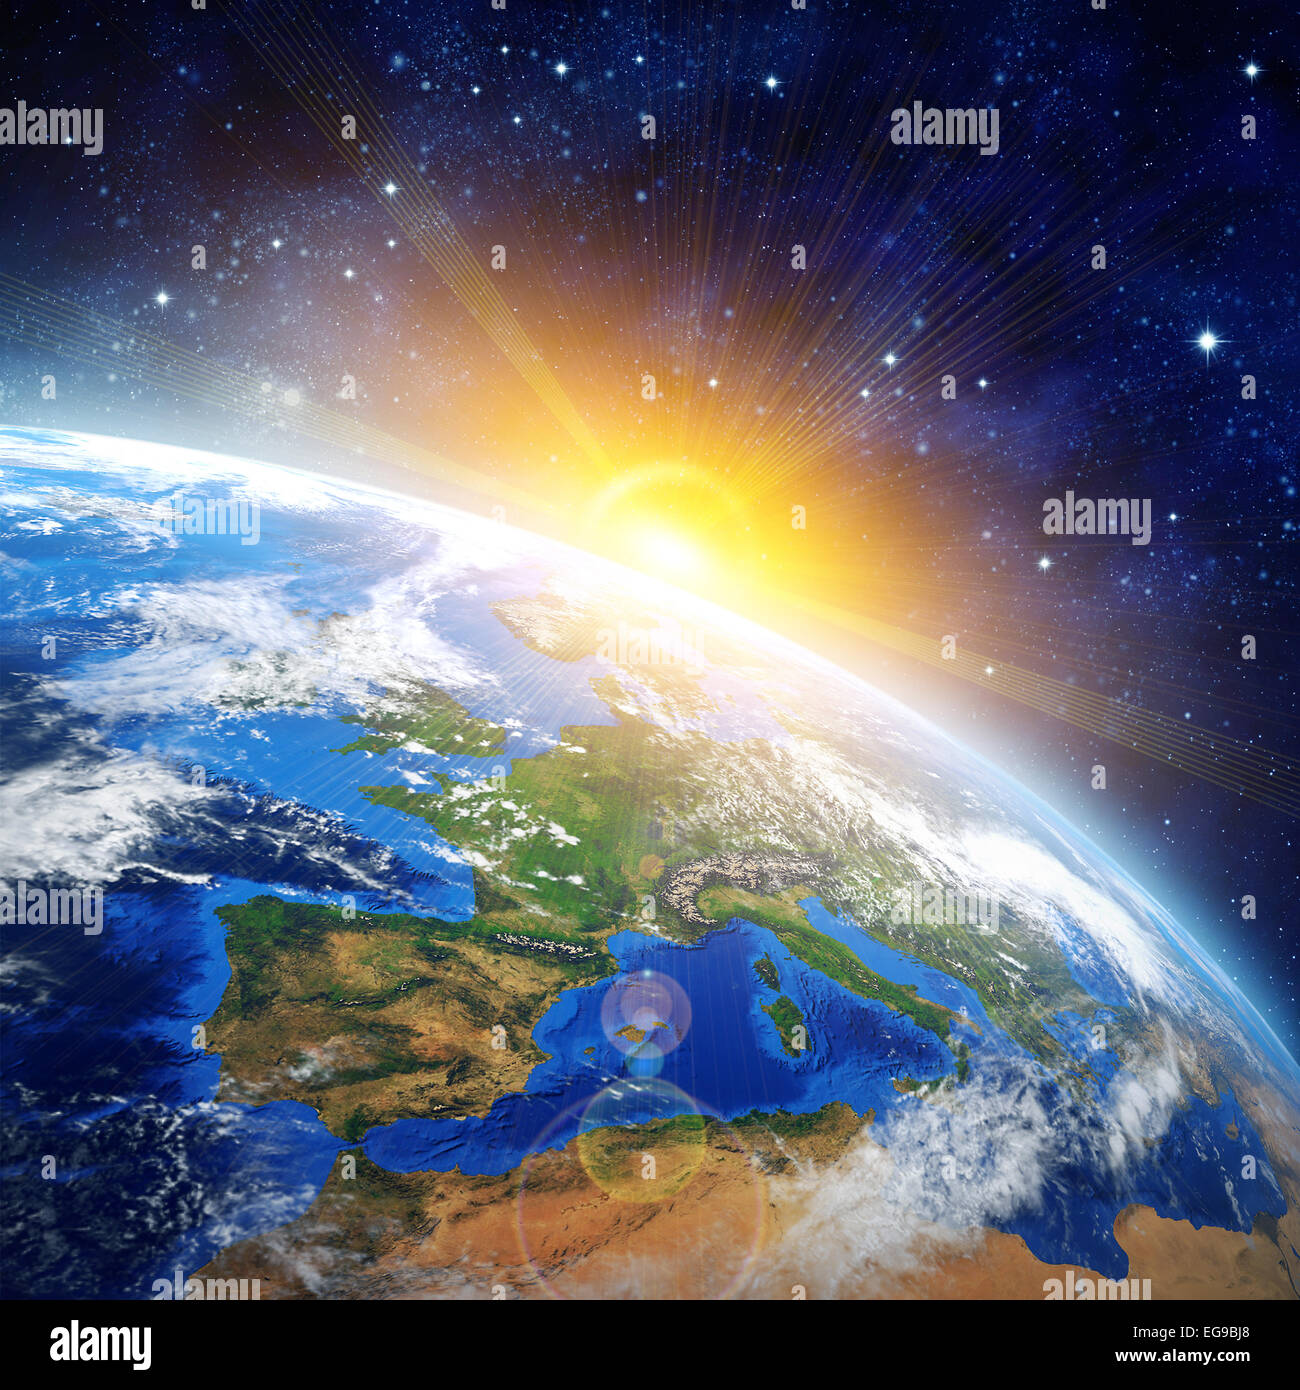 Sun From Space: Sunrise Over The Earth. Imaginary View Of Planet Earth In